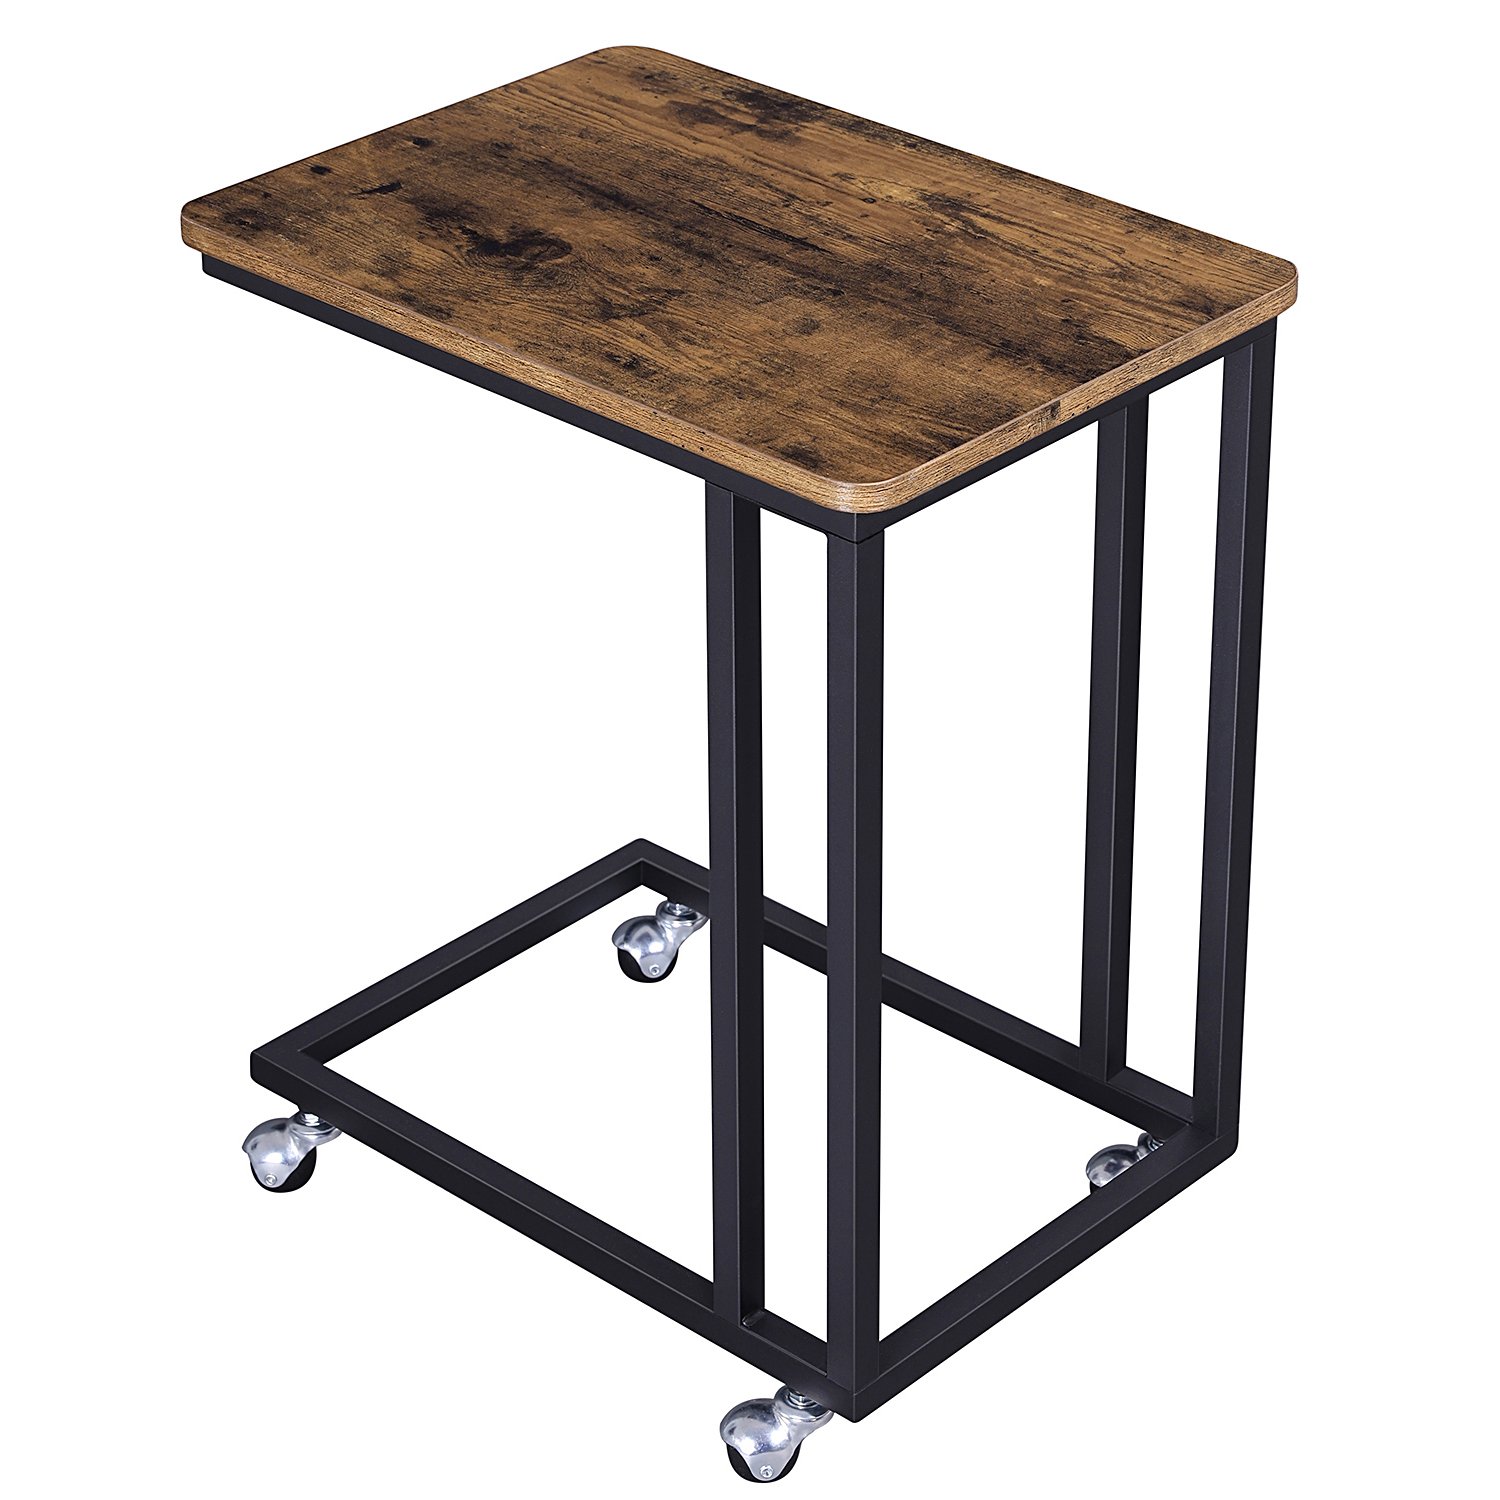 VASAGLE living Room Furniture Small Metal wooden Bed Side <strong>Table</strong> with Wheels